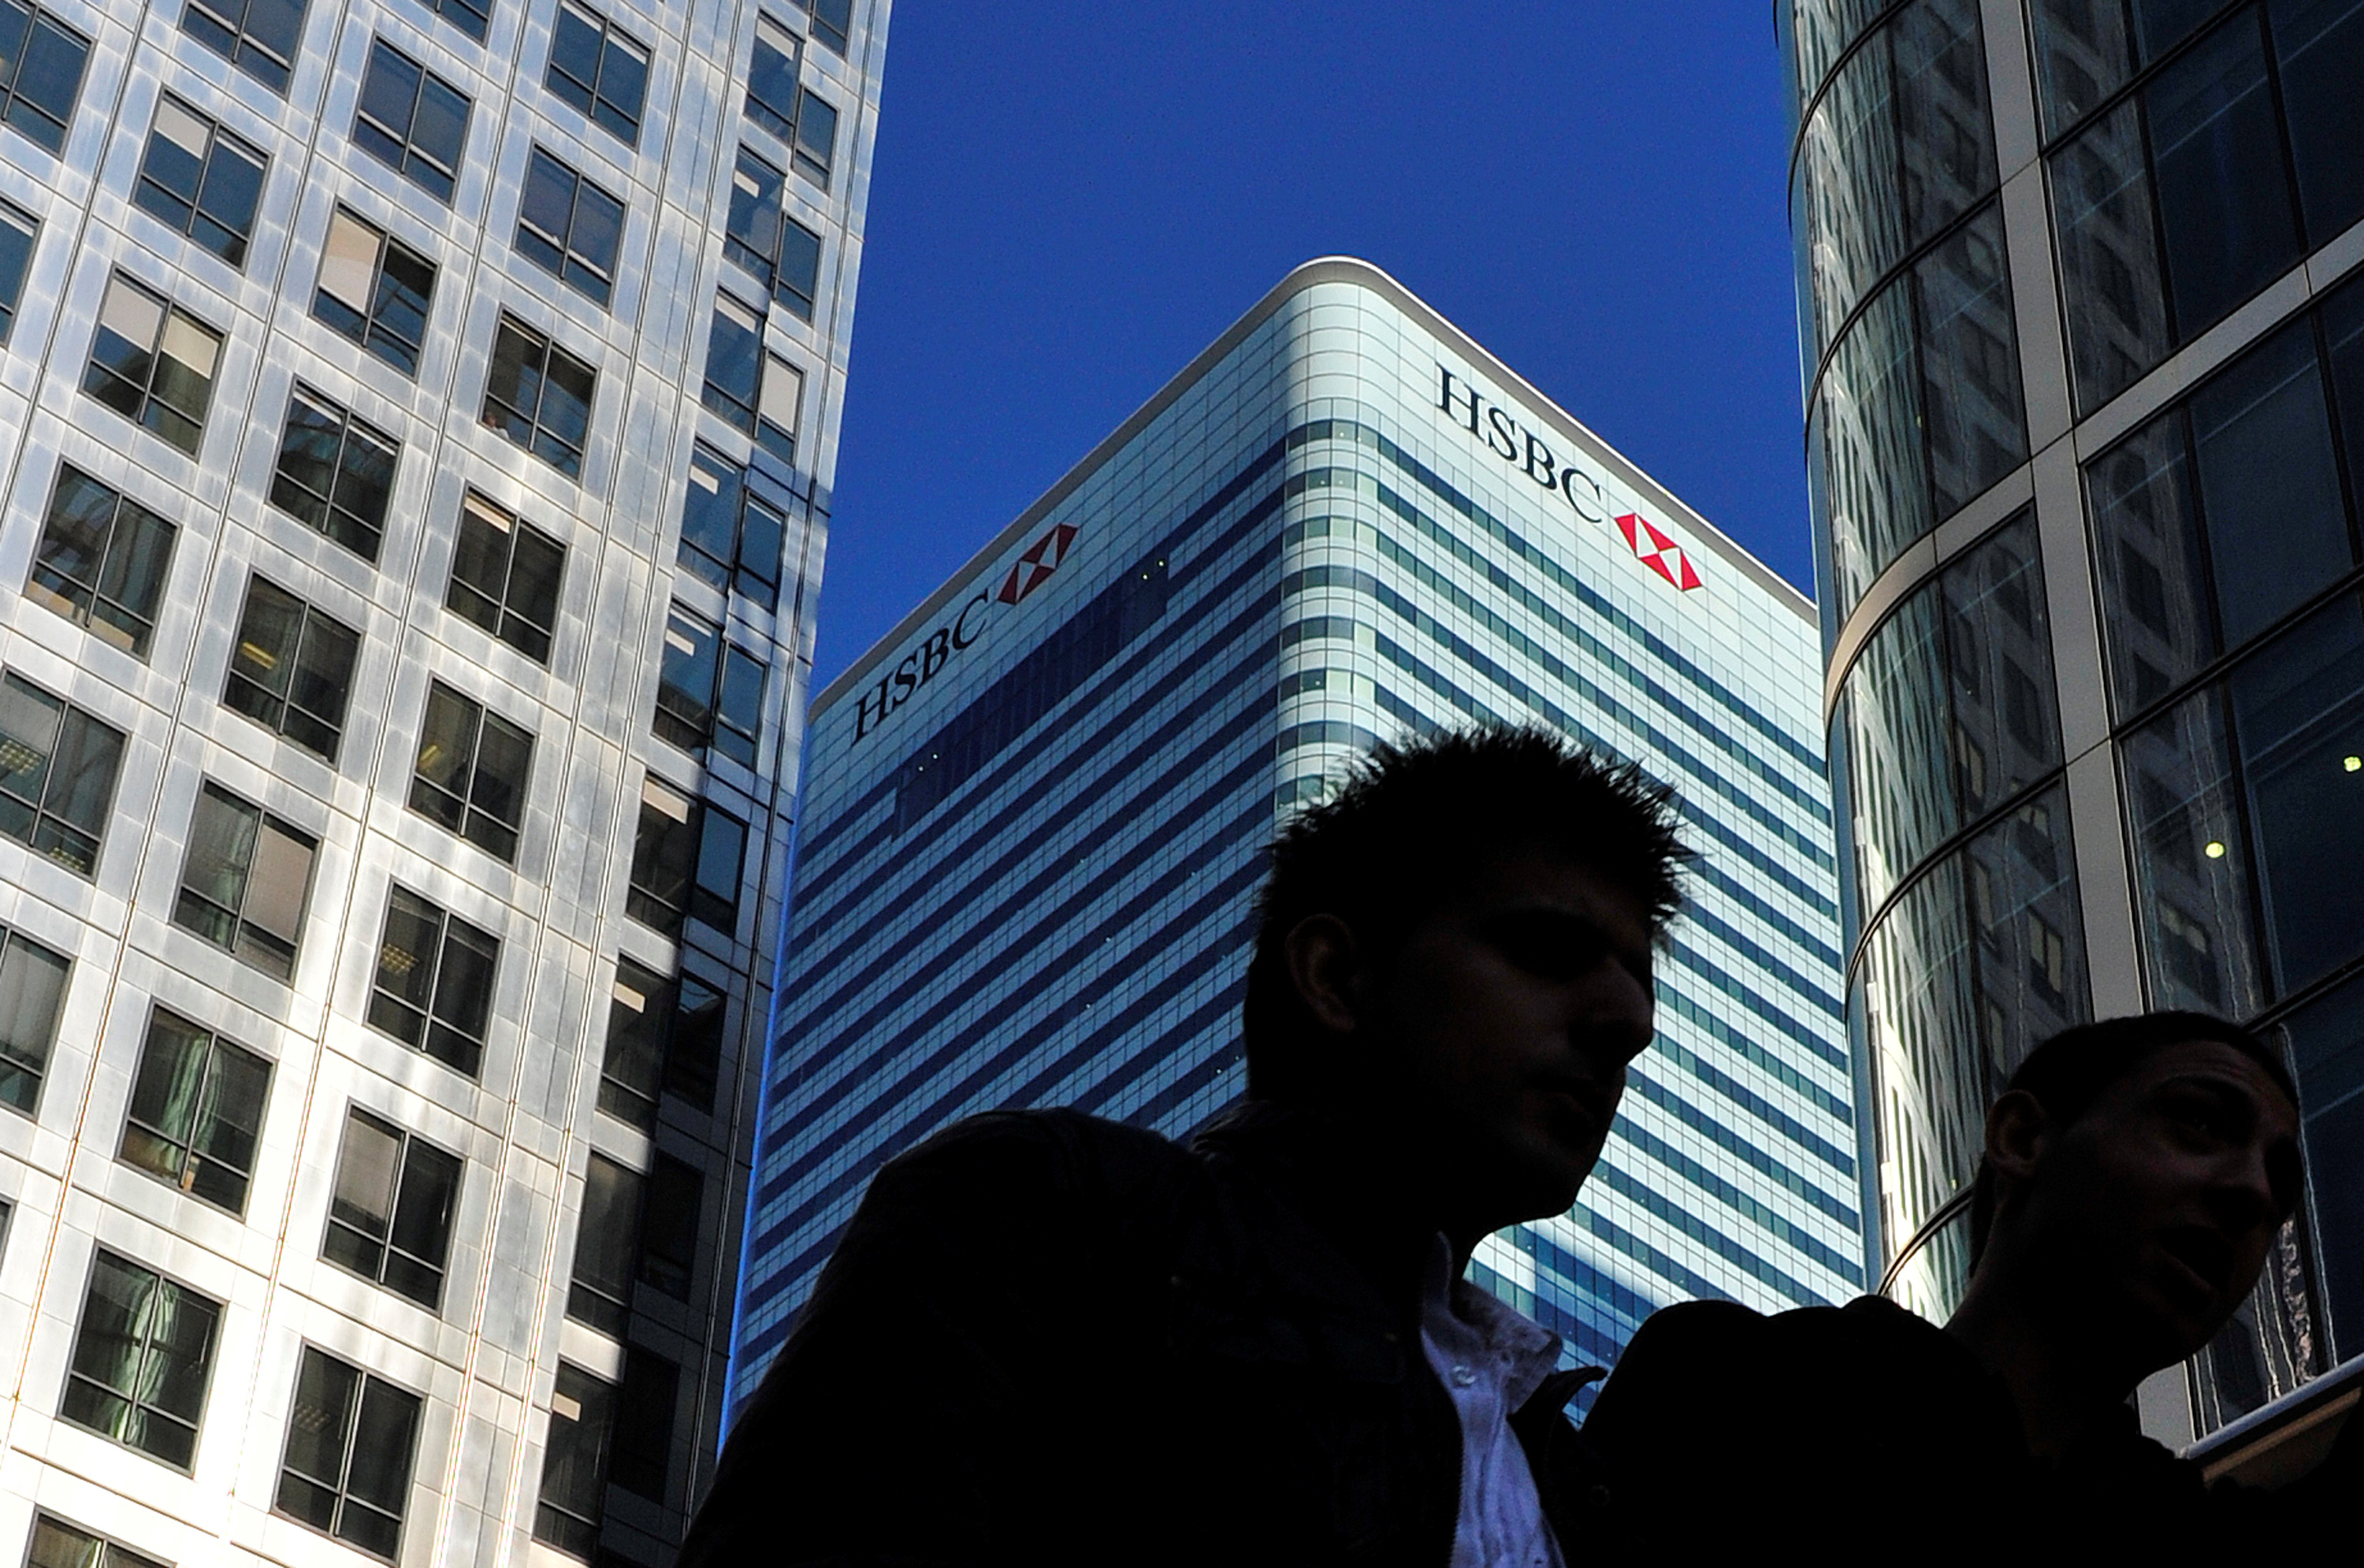 FILE PHOTO: The HSBC headquarters building is seen in the Canary Wharf financial district in London